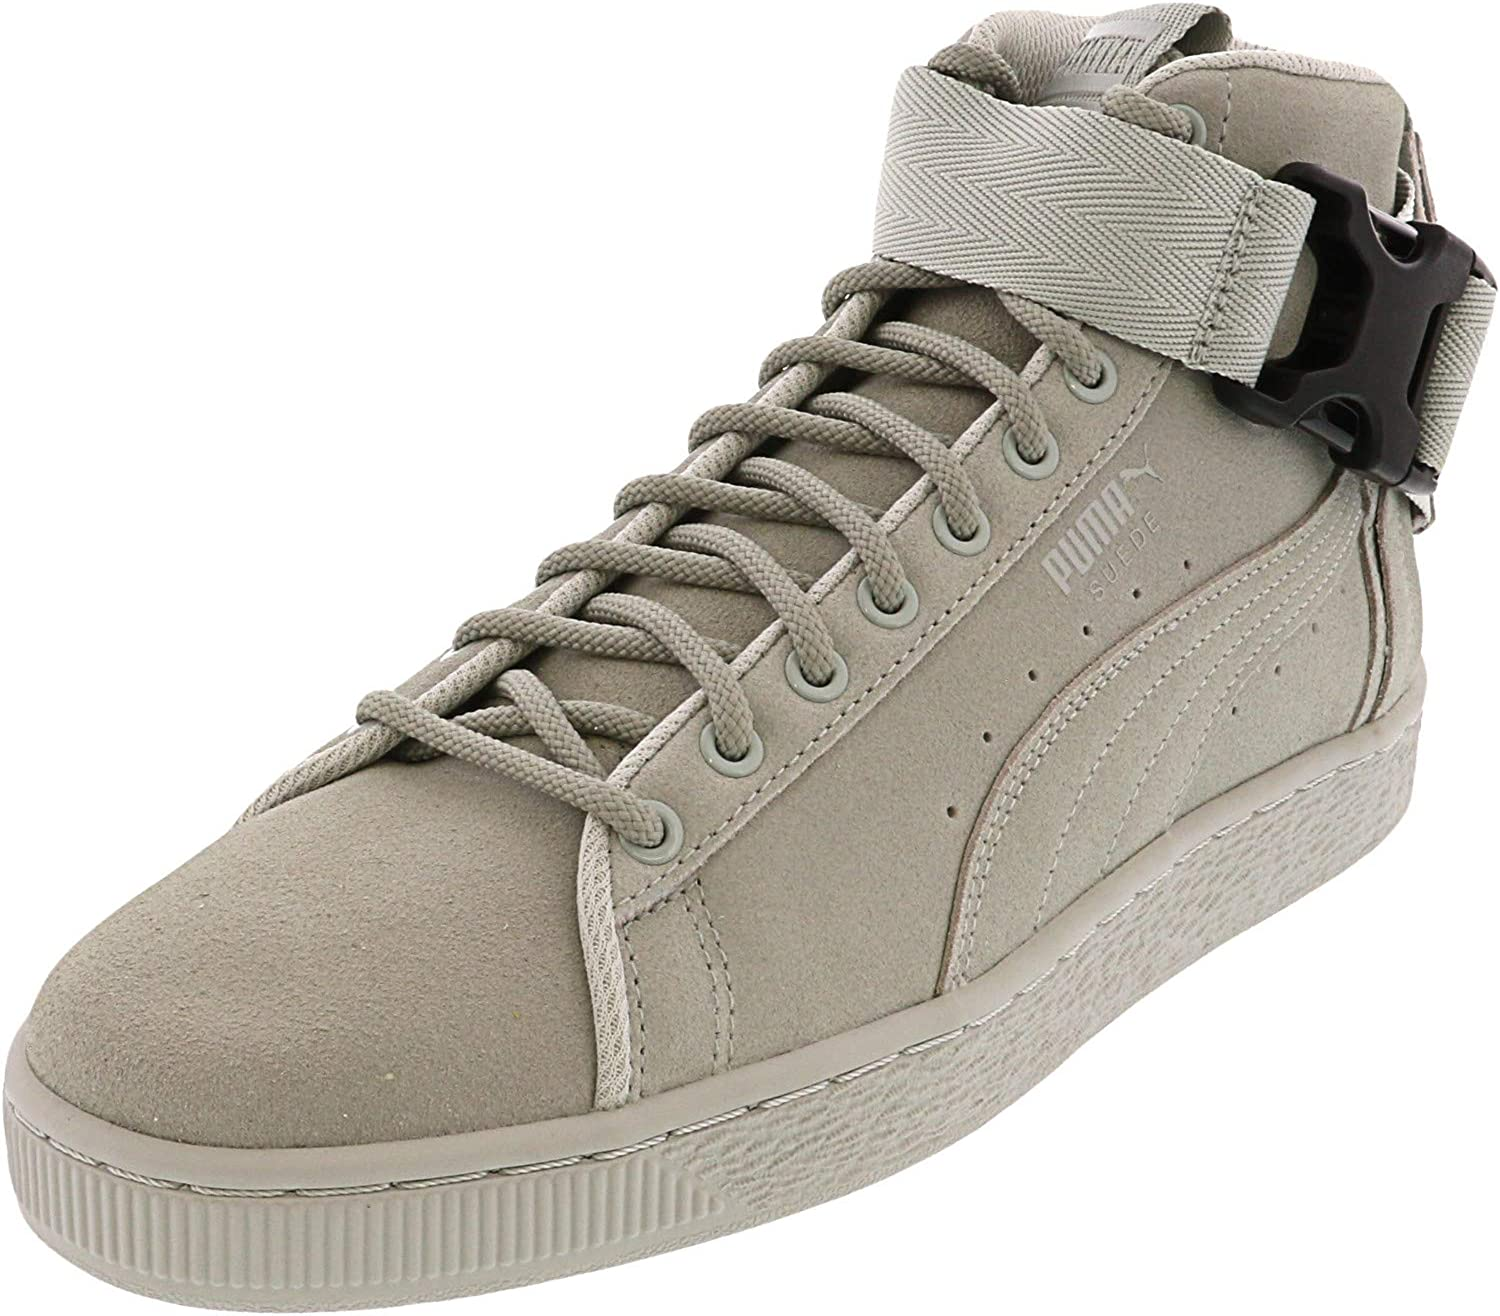 PUMA Mens Suede Classic Mid Buckle Lace